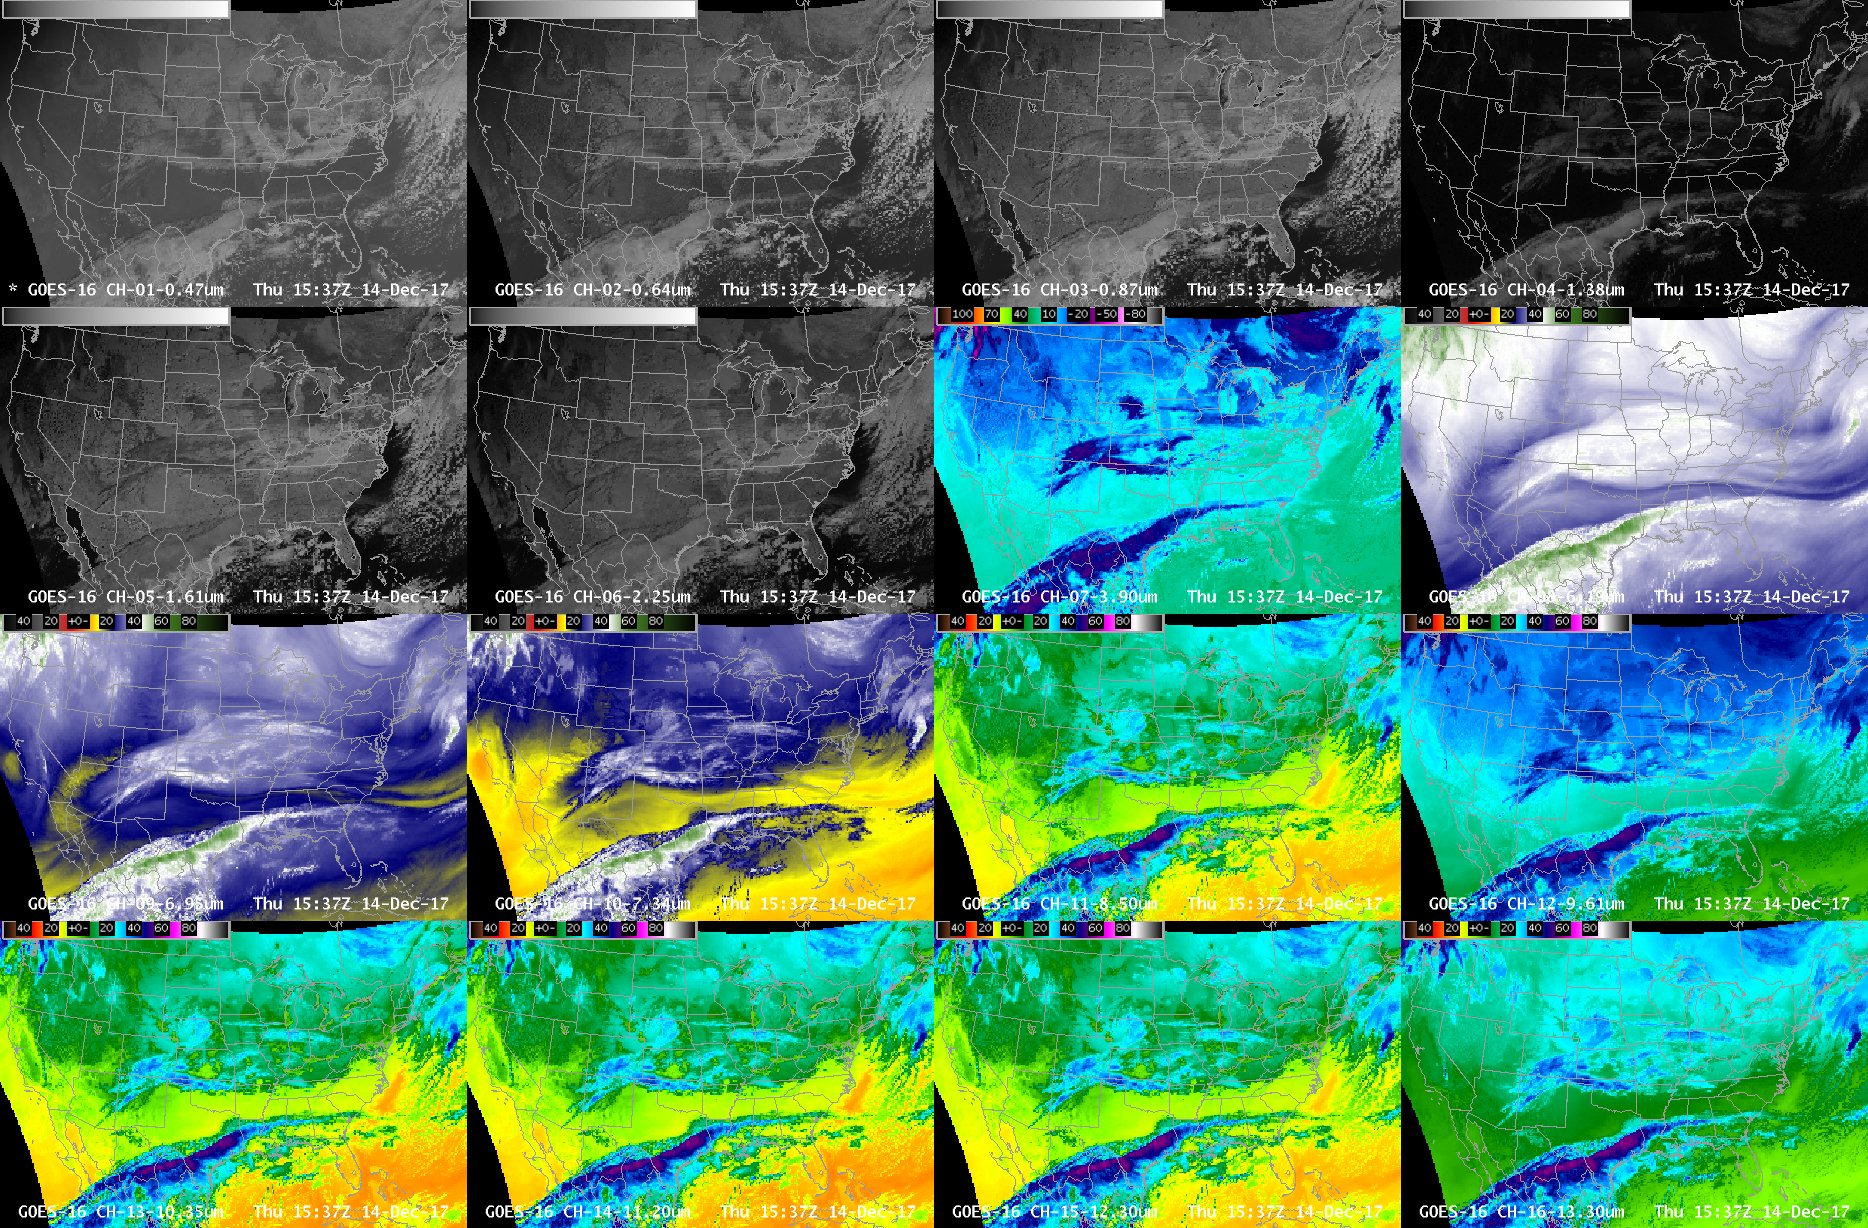 Multi-panel images showing all 16 bands of the GOES-16 ABI [click to enlarge]